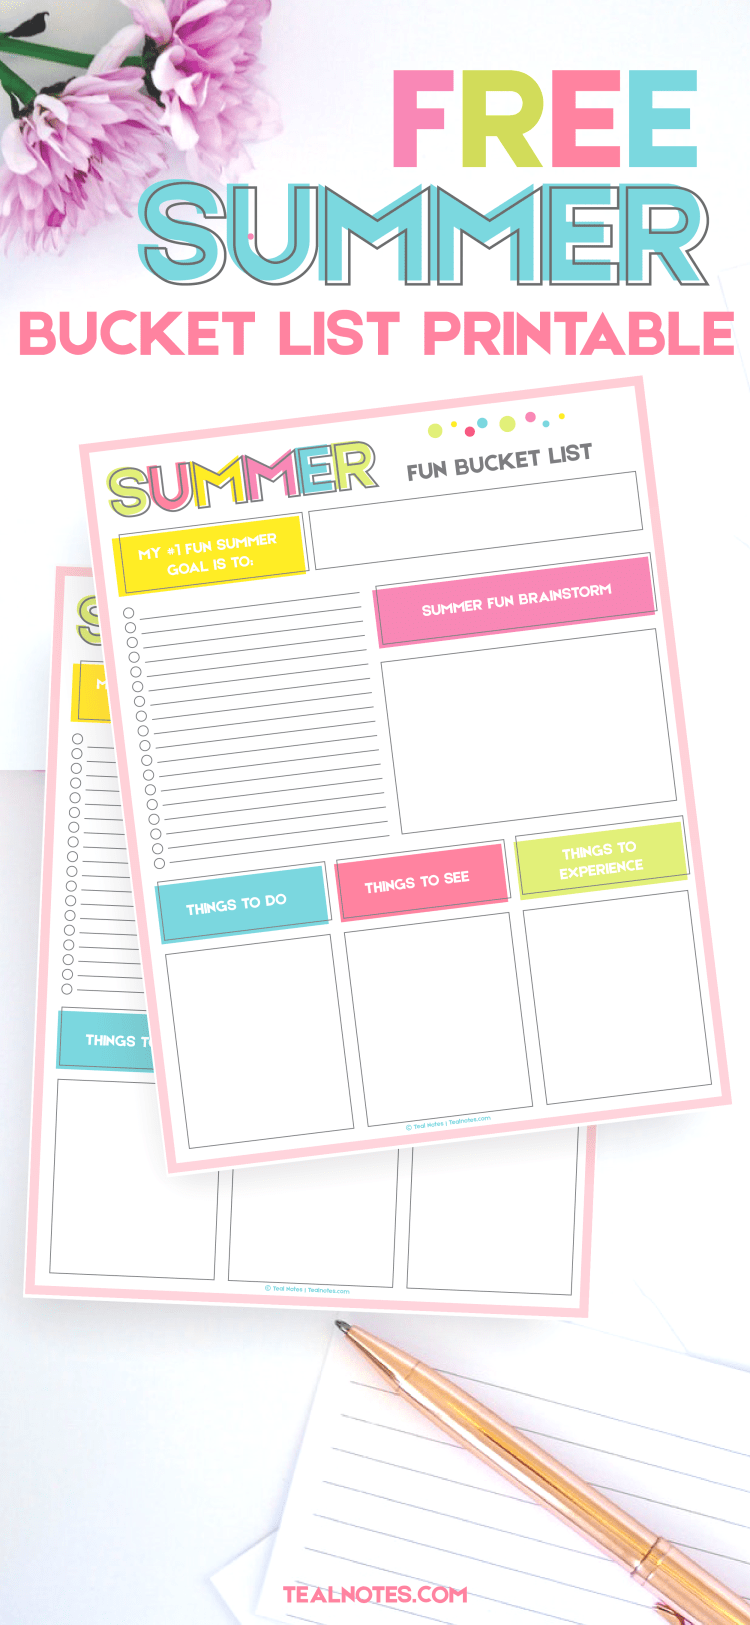 Summer Bucket List Printable Template To Organize Your ...